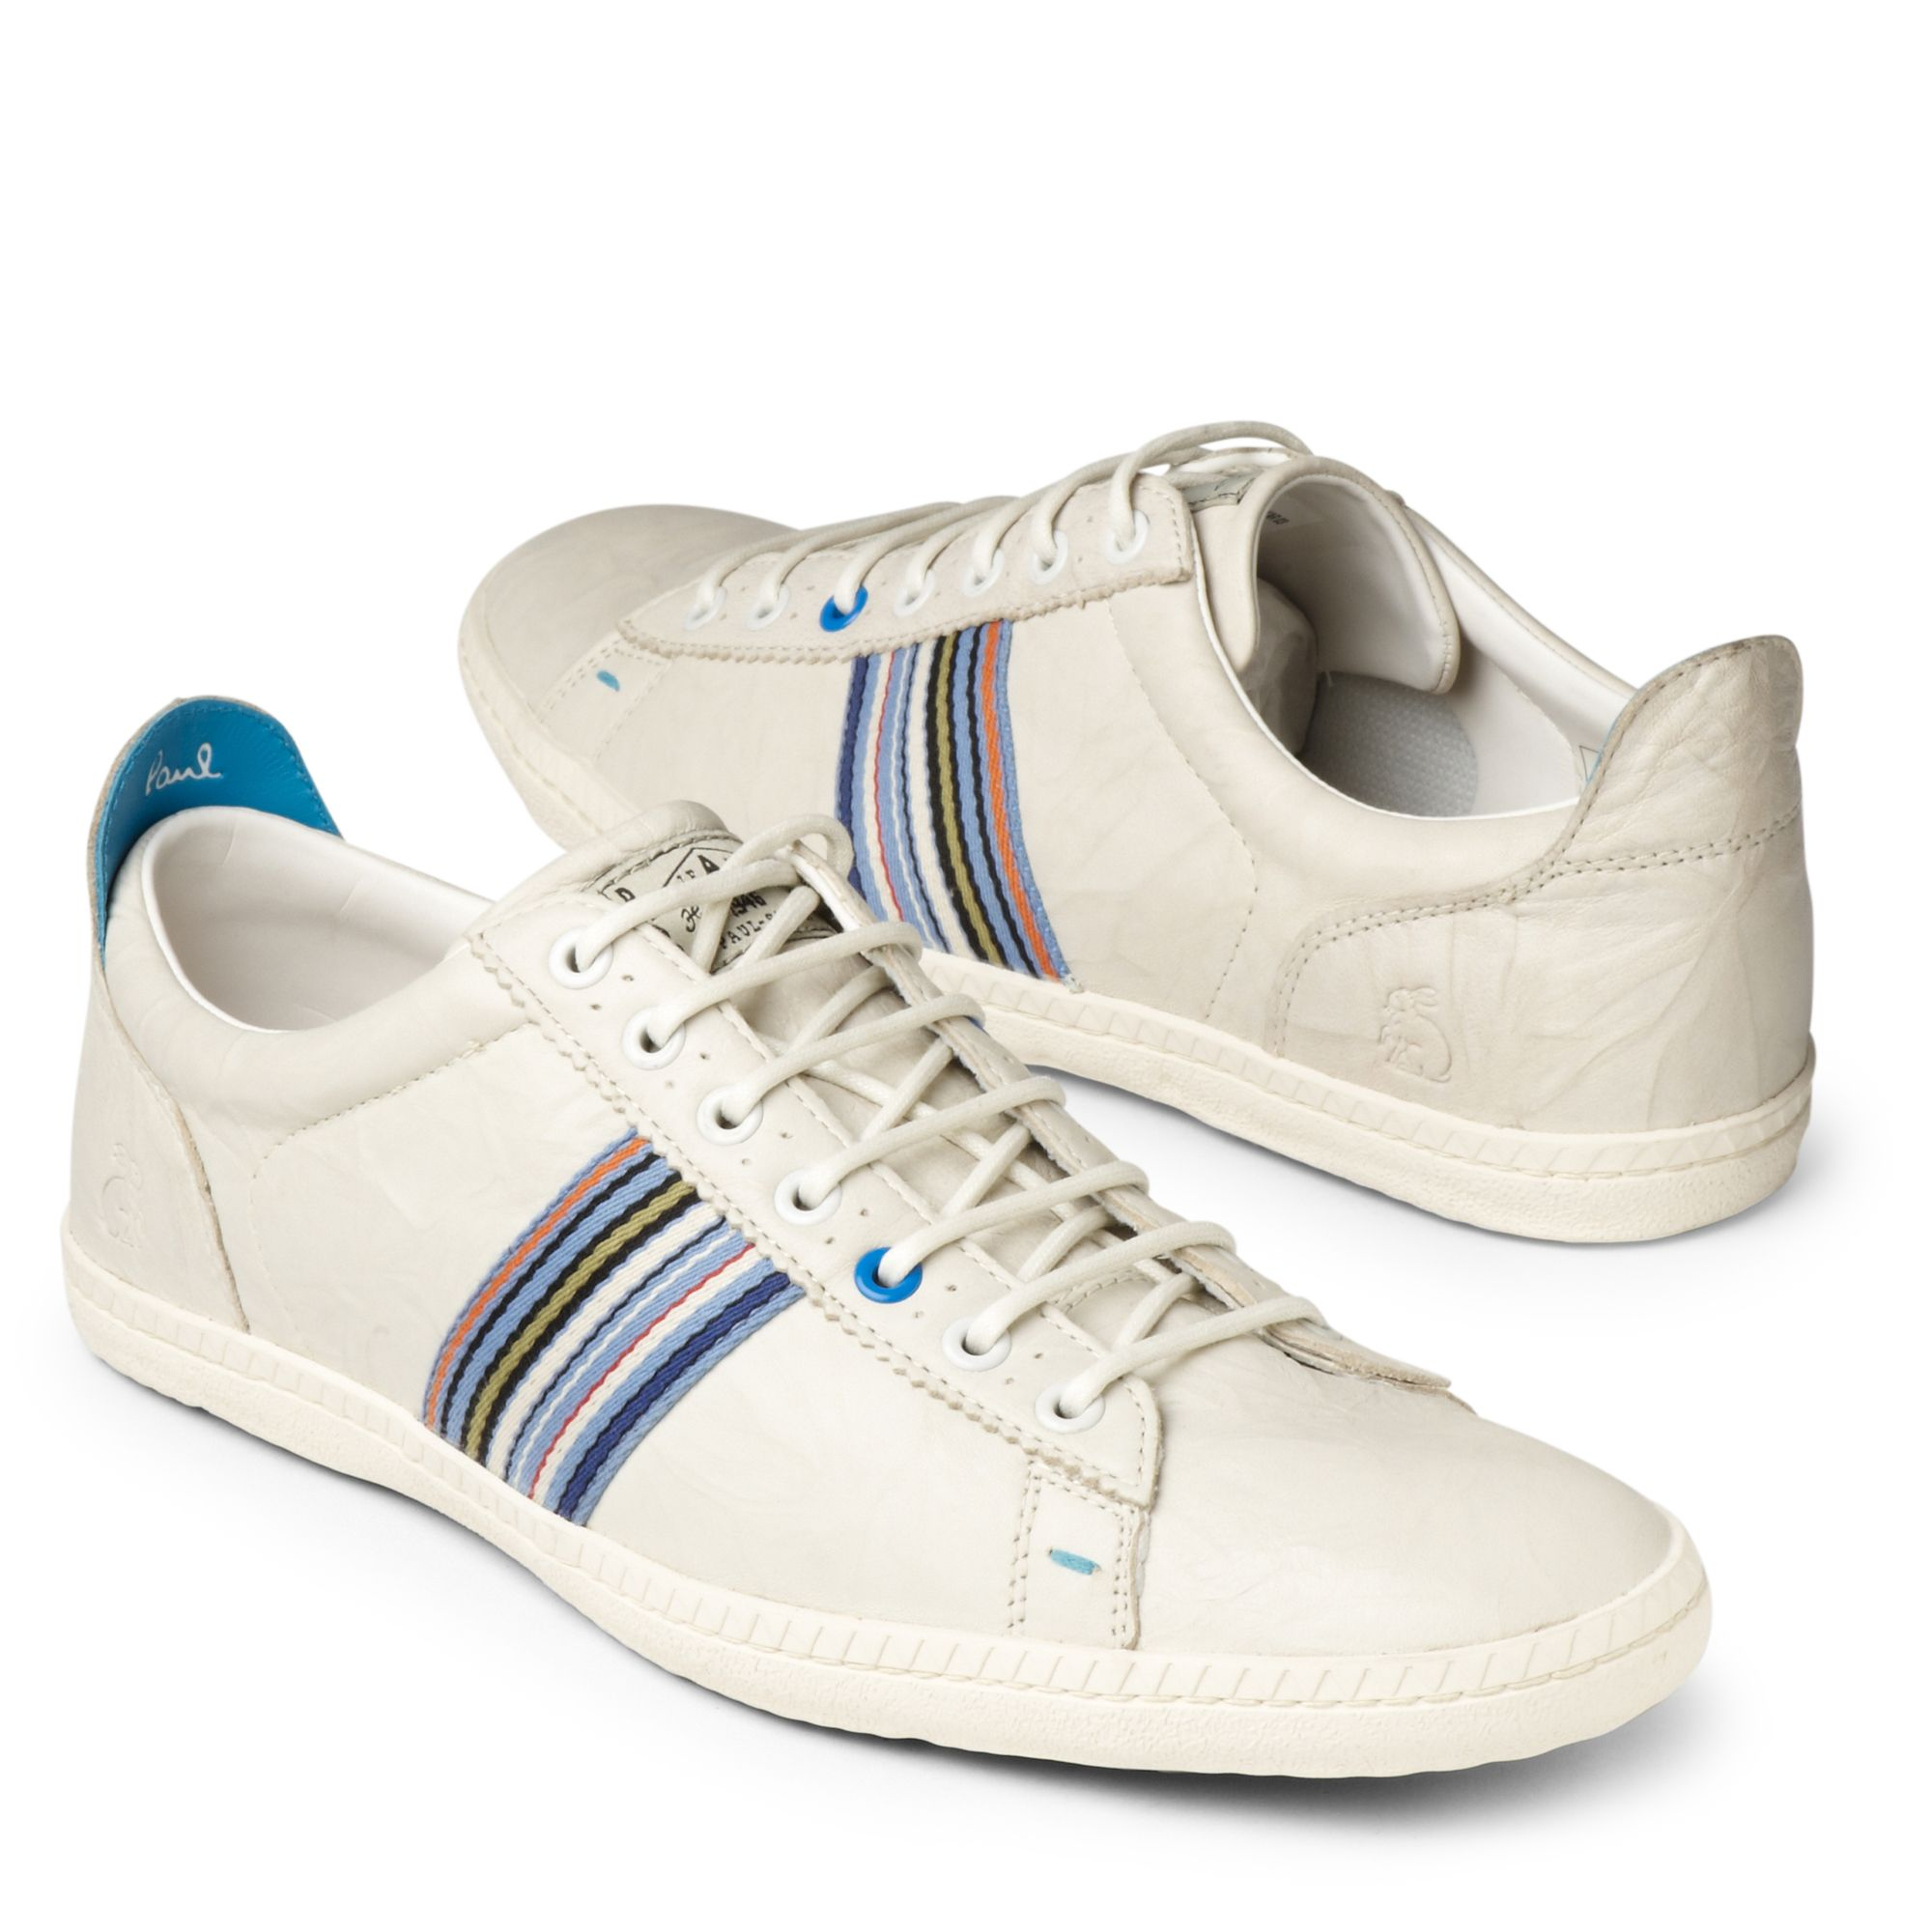 Paul Smith Osmo Leather Trainer In White For Men Lyst